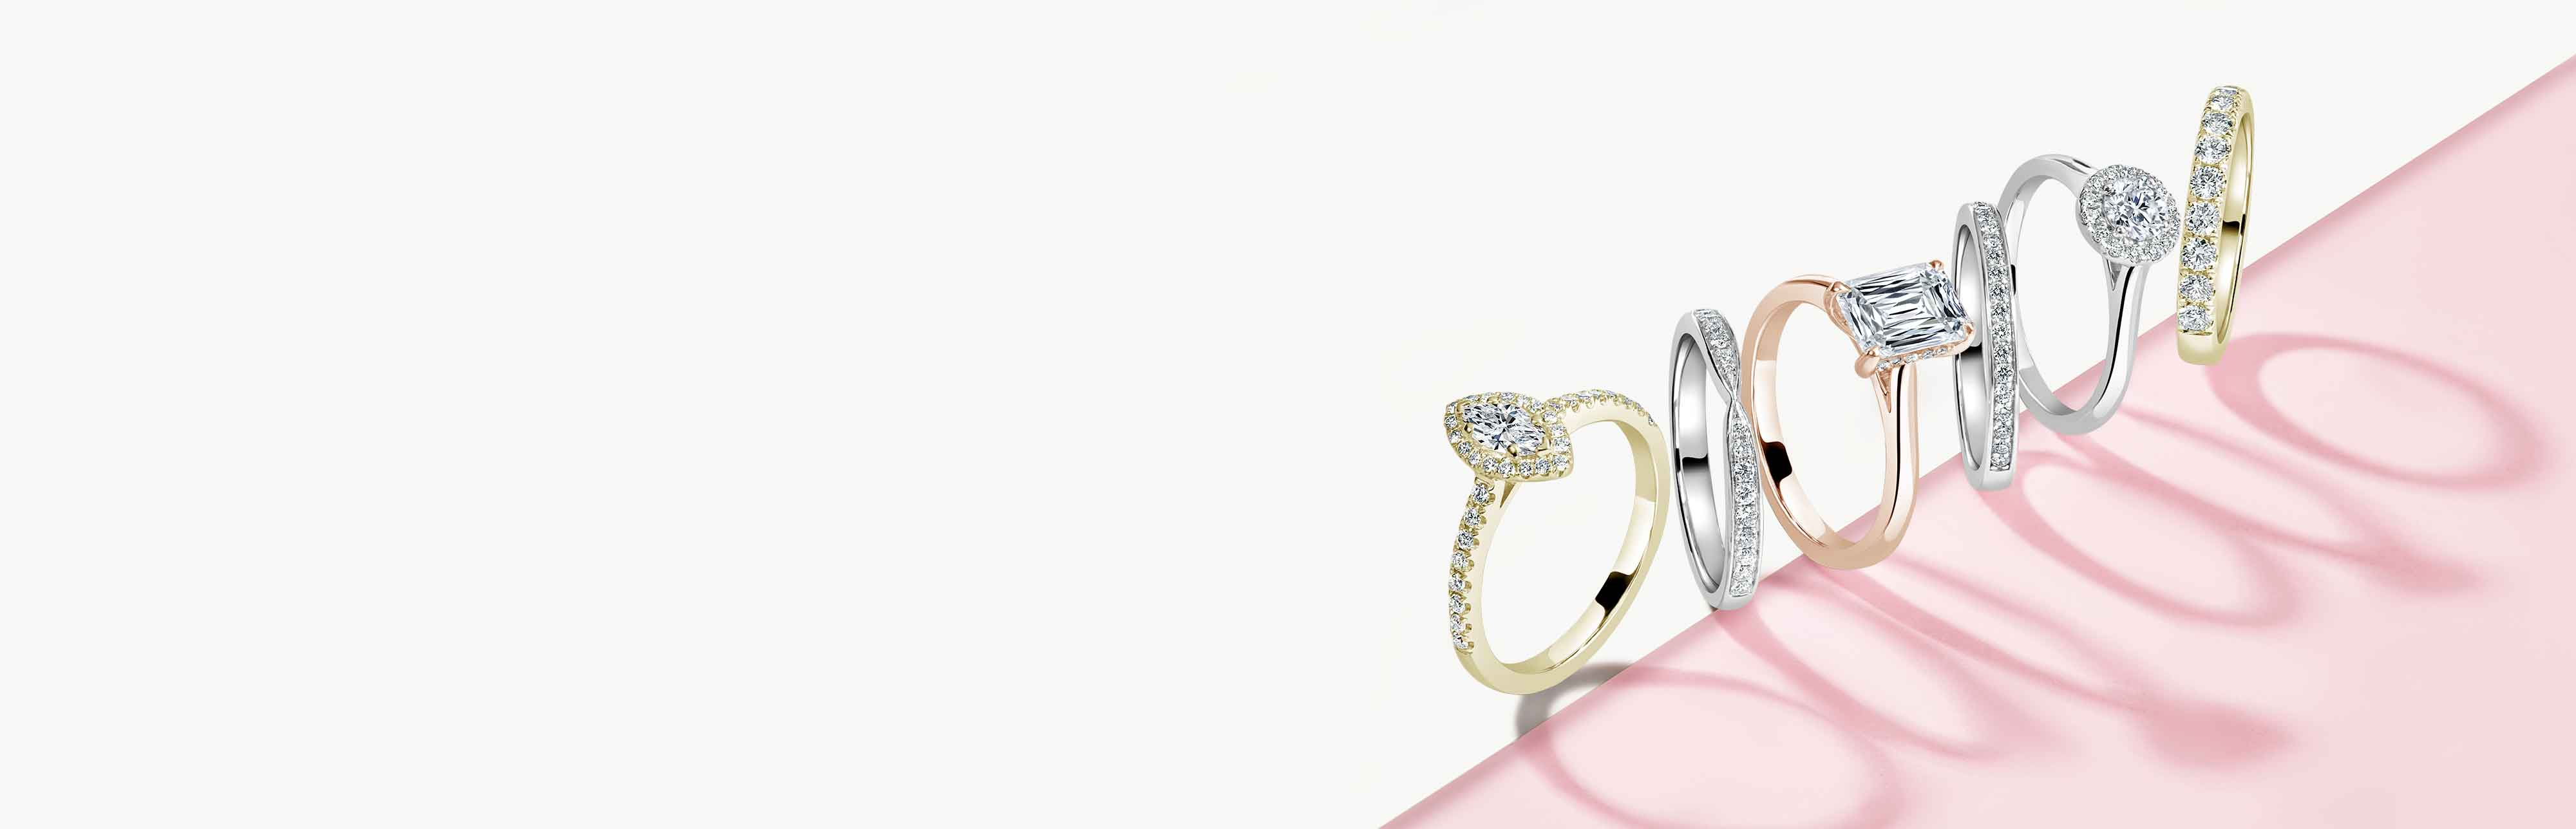 White Gold 3 Stone Engagement Rings - Steven Stone